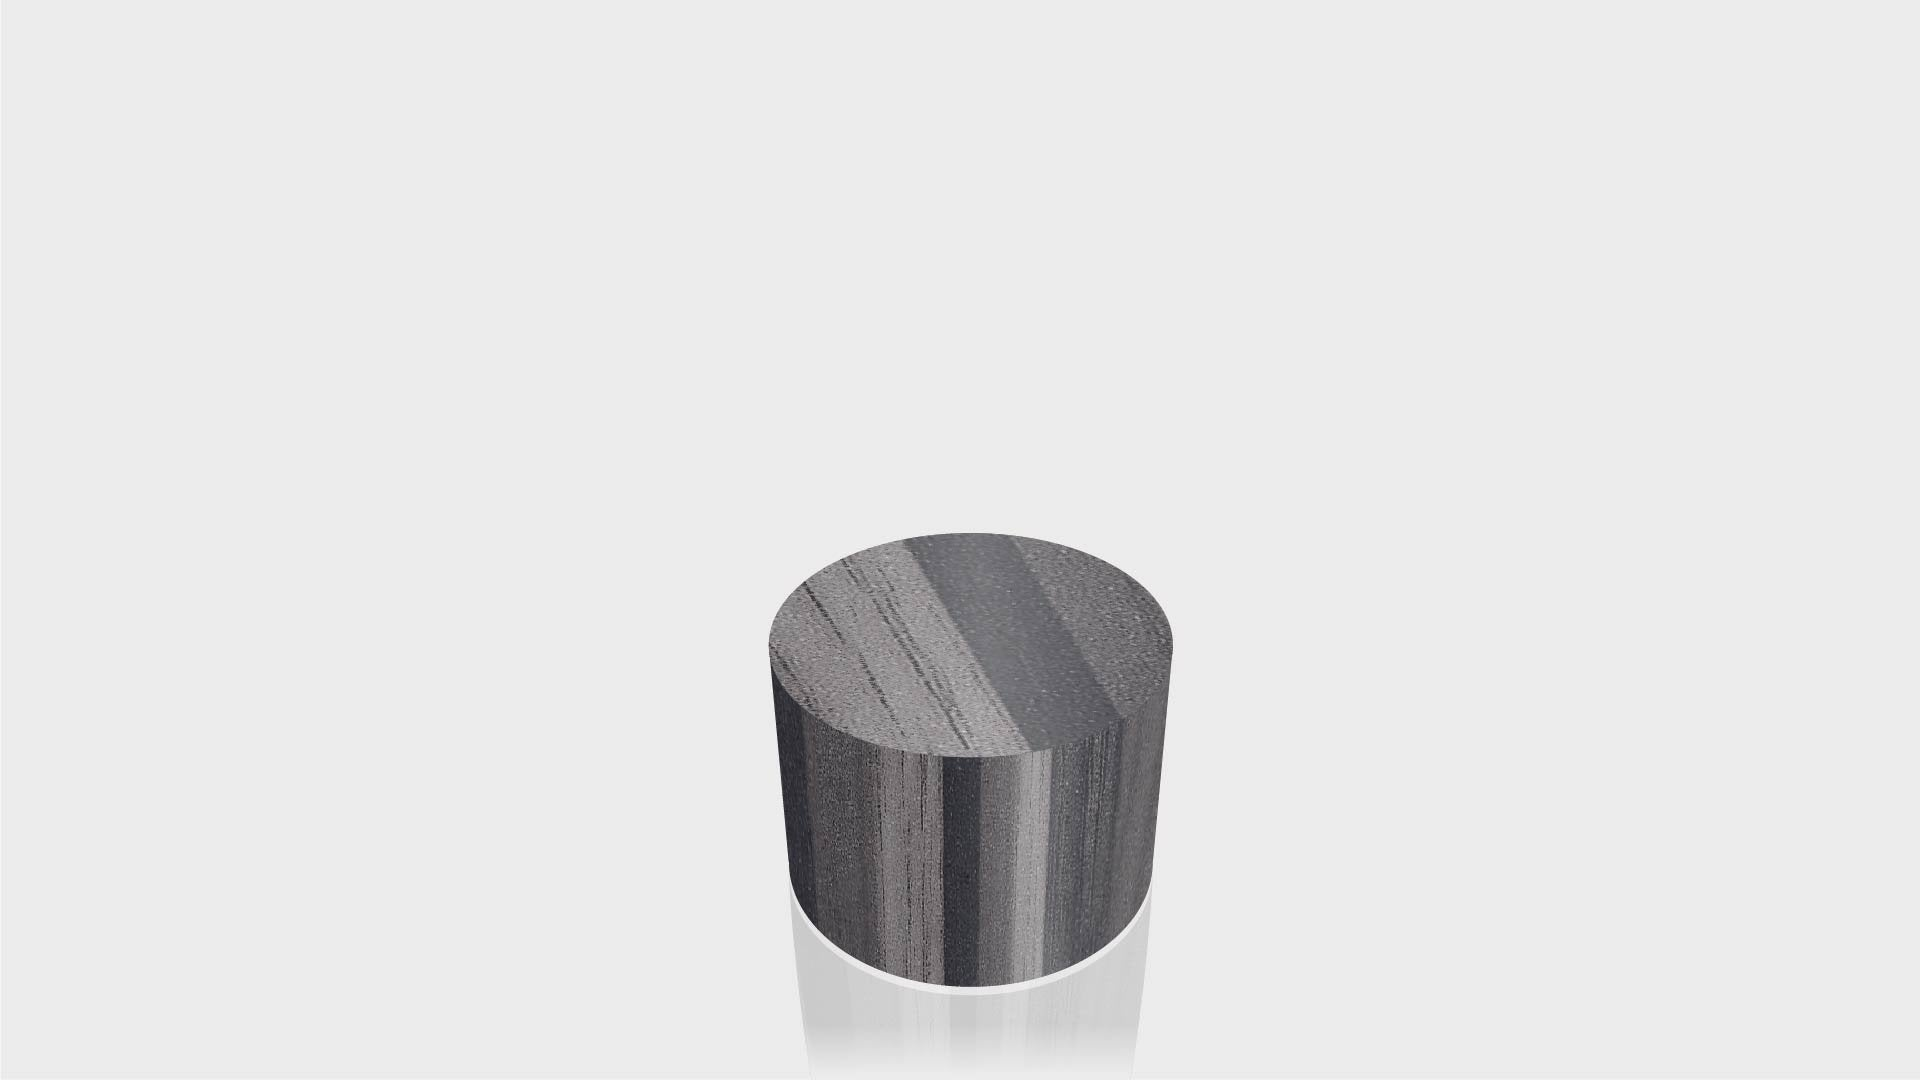 CYLINDRICAL - Ebony Ribbonwood Base + Ebony Ribbonwood Top - 23x23